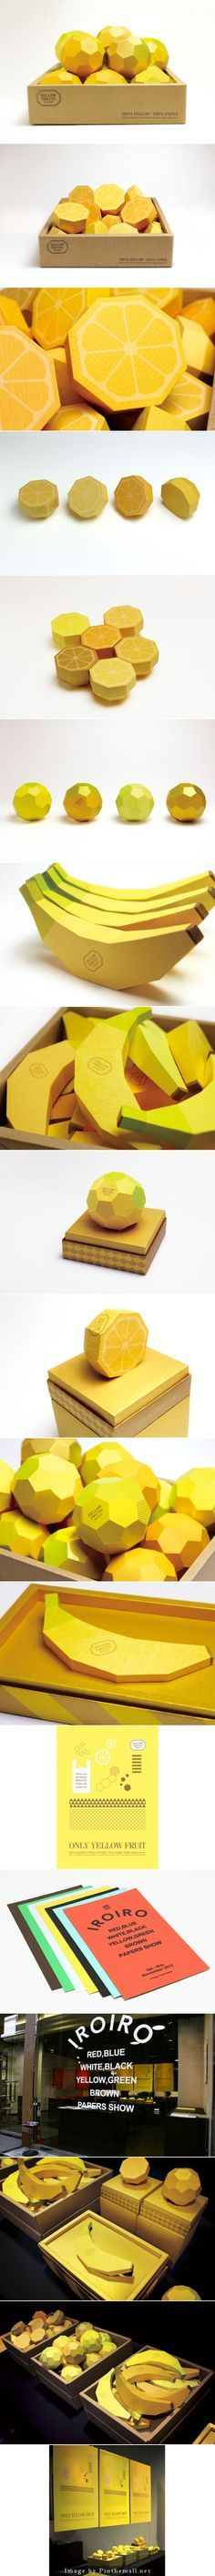 yellow fruit #packaging